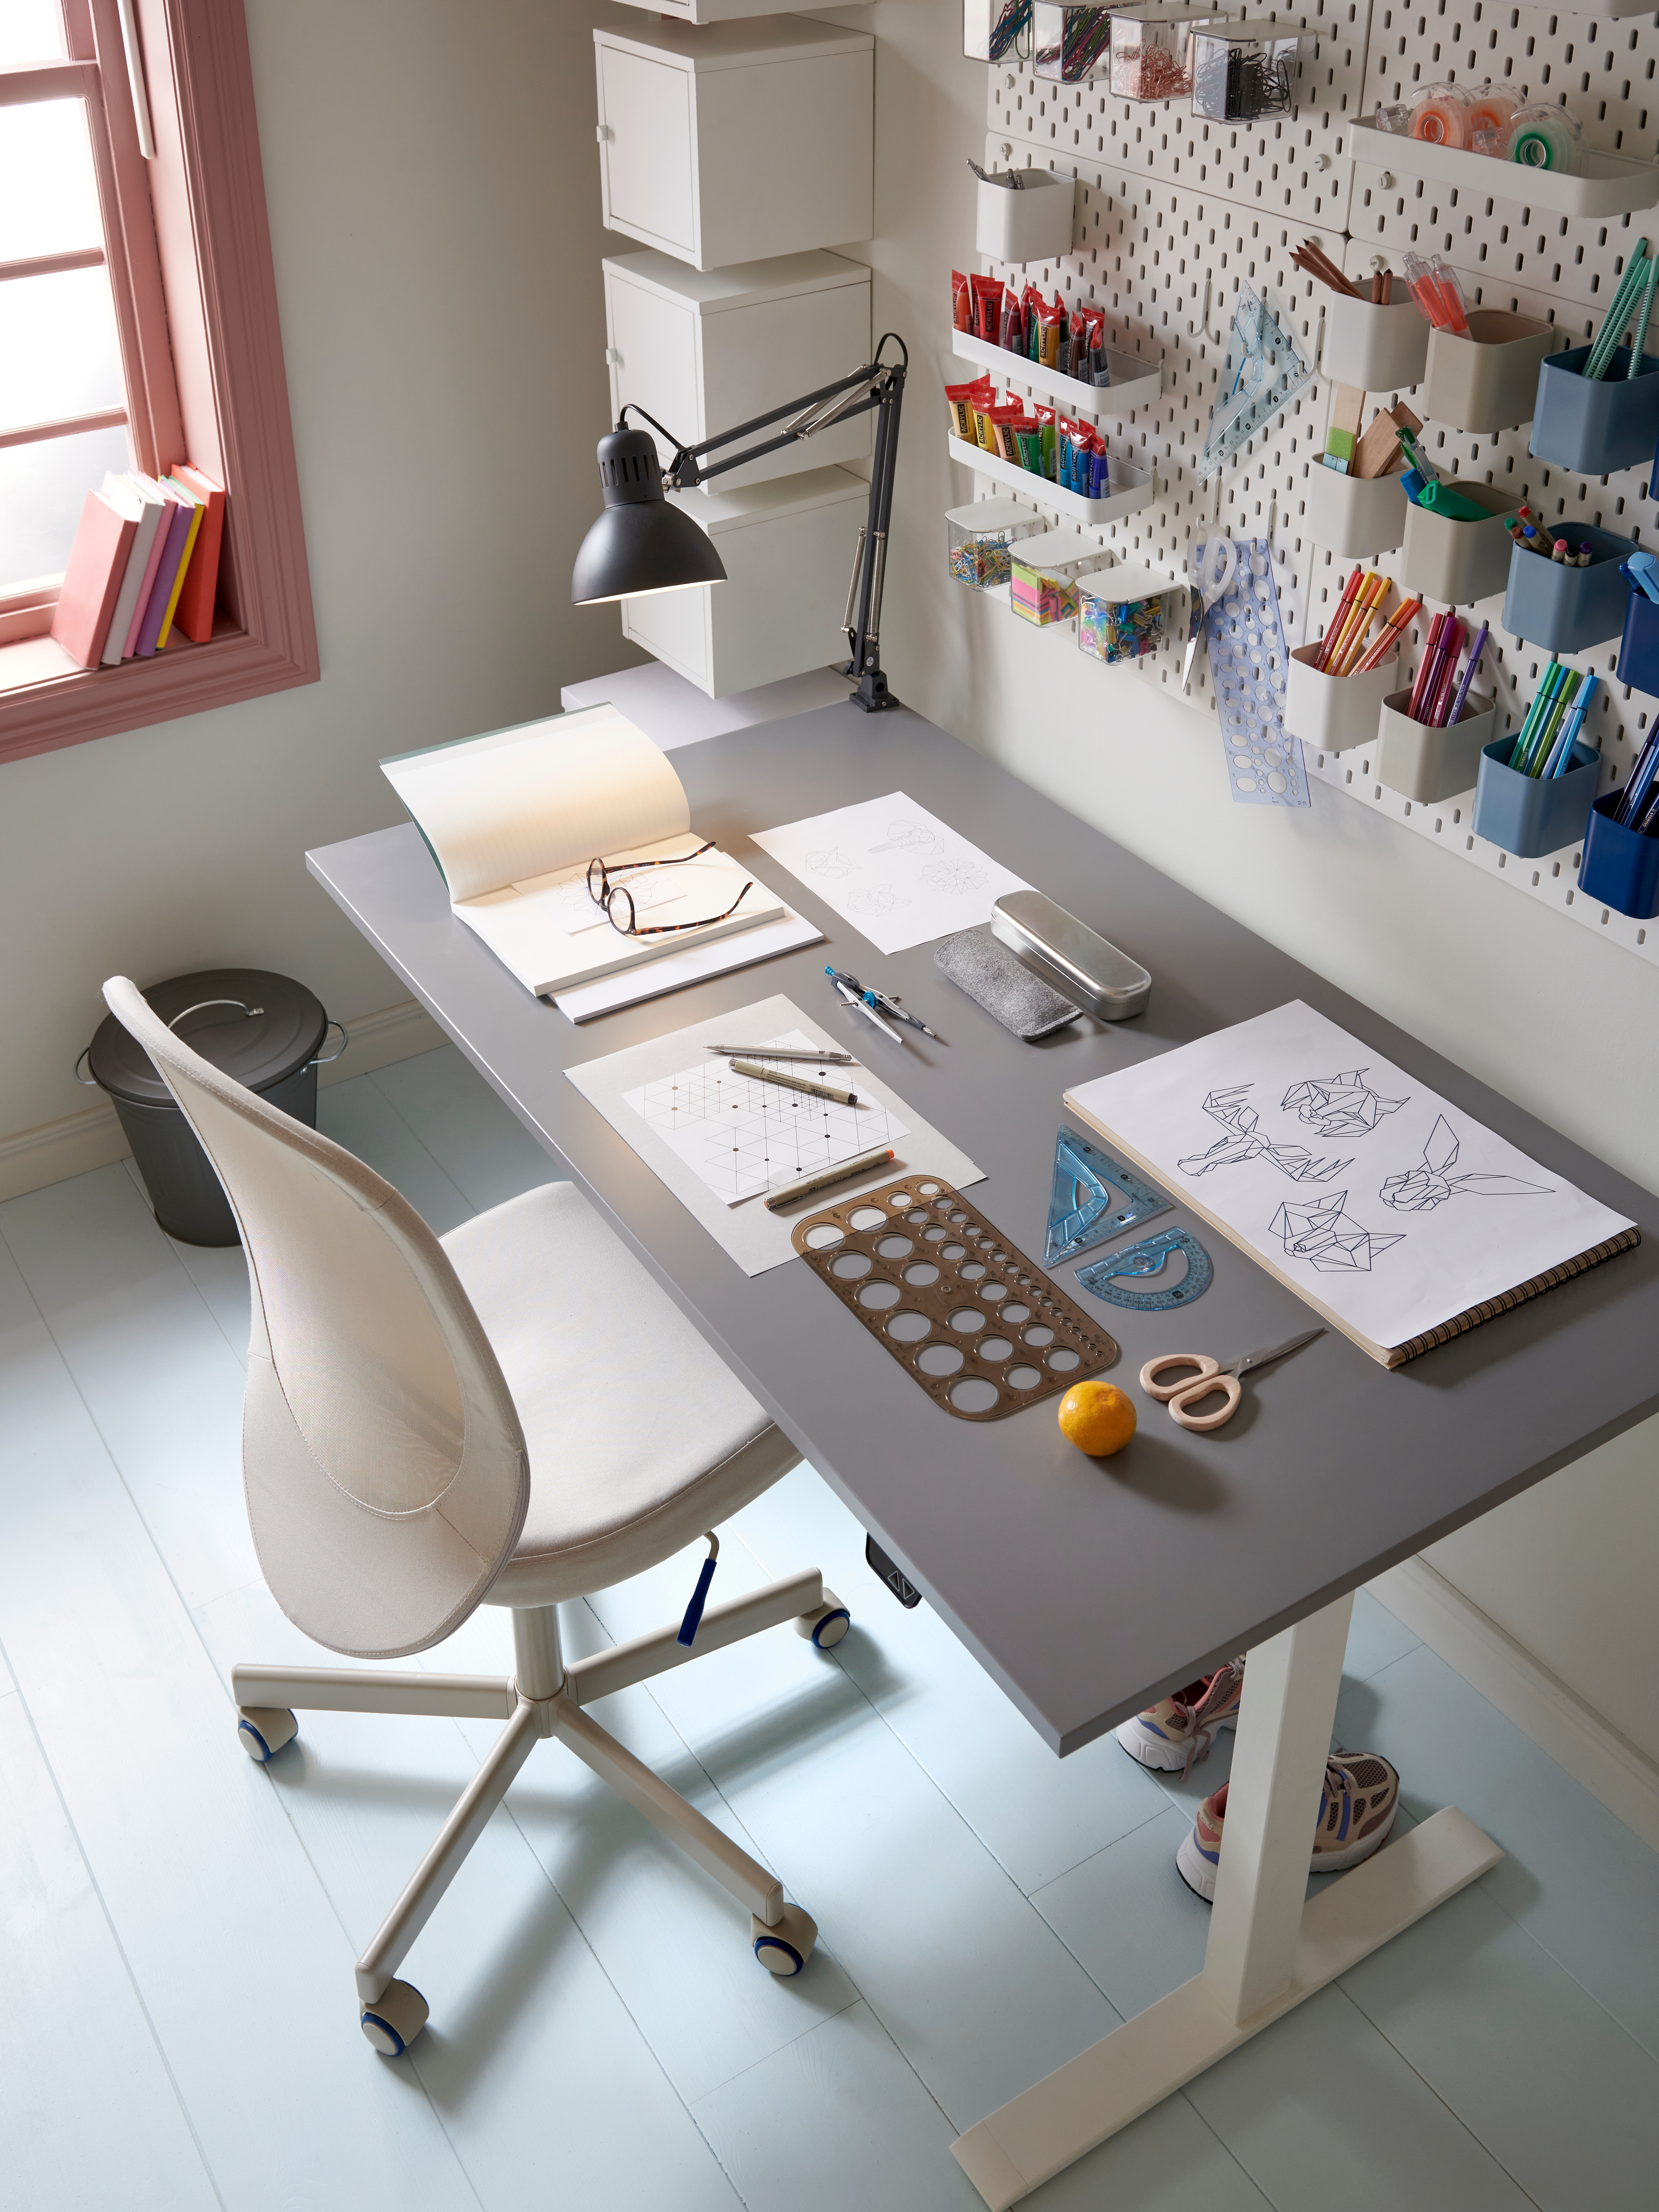 A neat and tidy workspace with a grey desk and white office chair and a pegboard with containers on the wall.